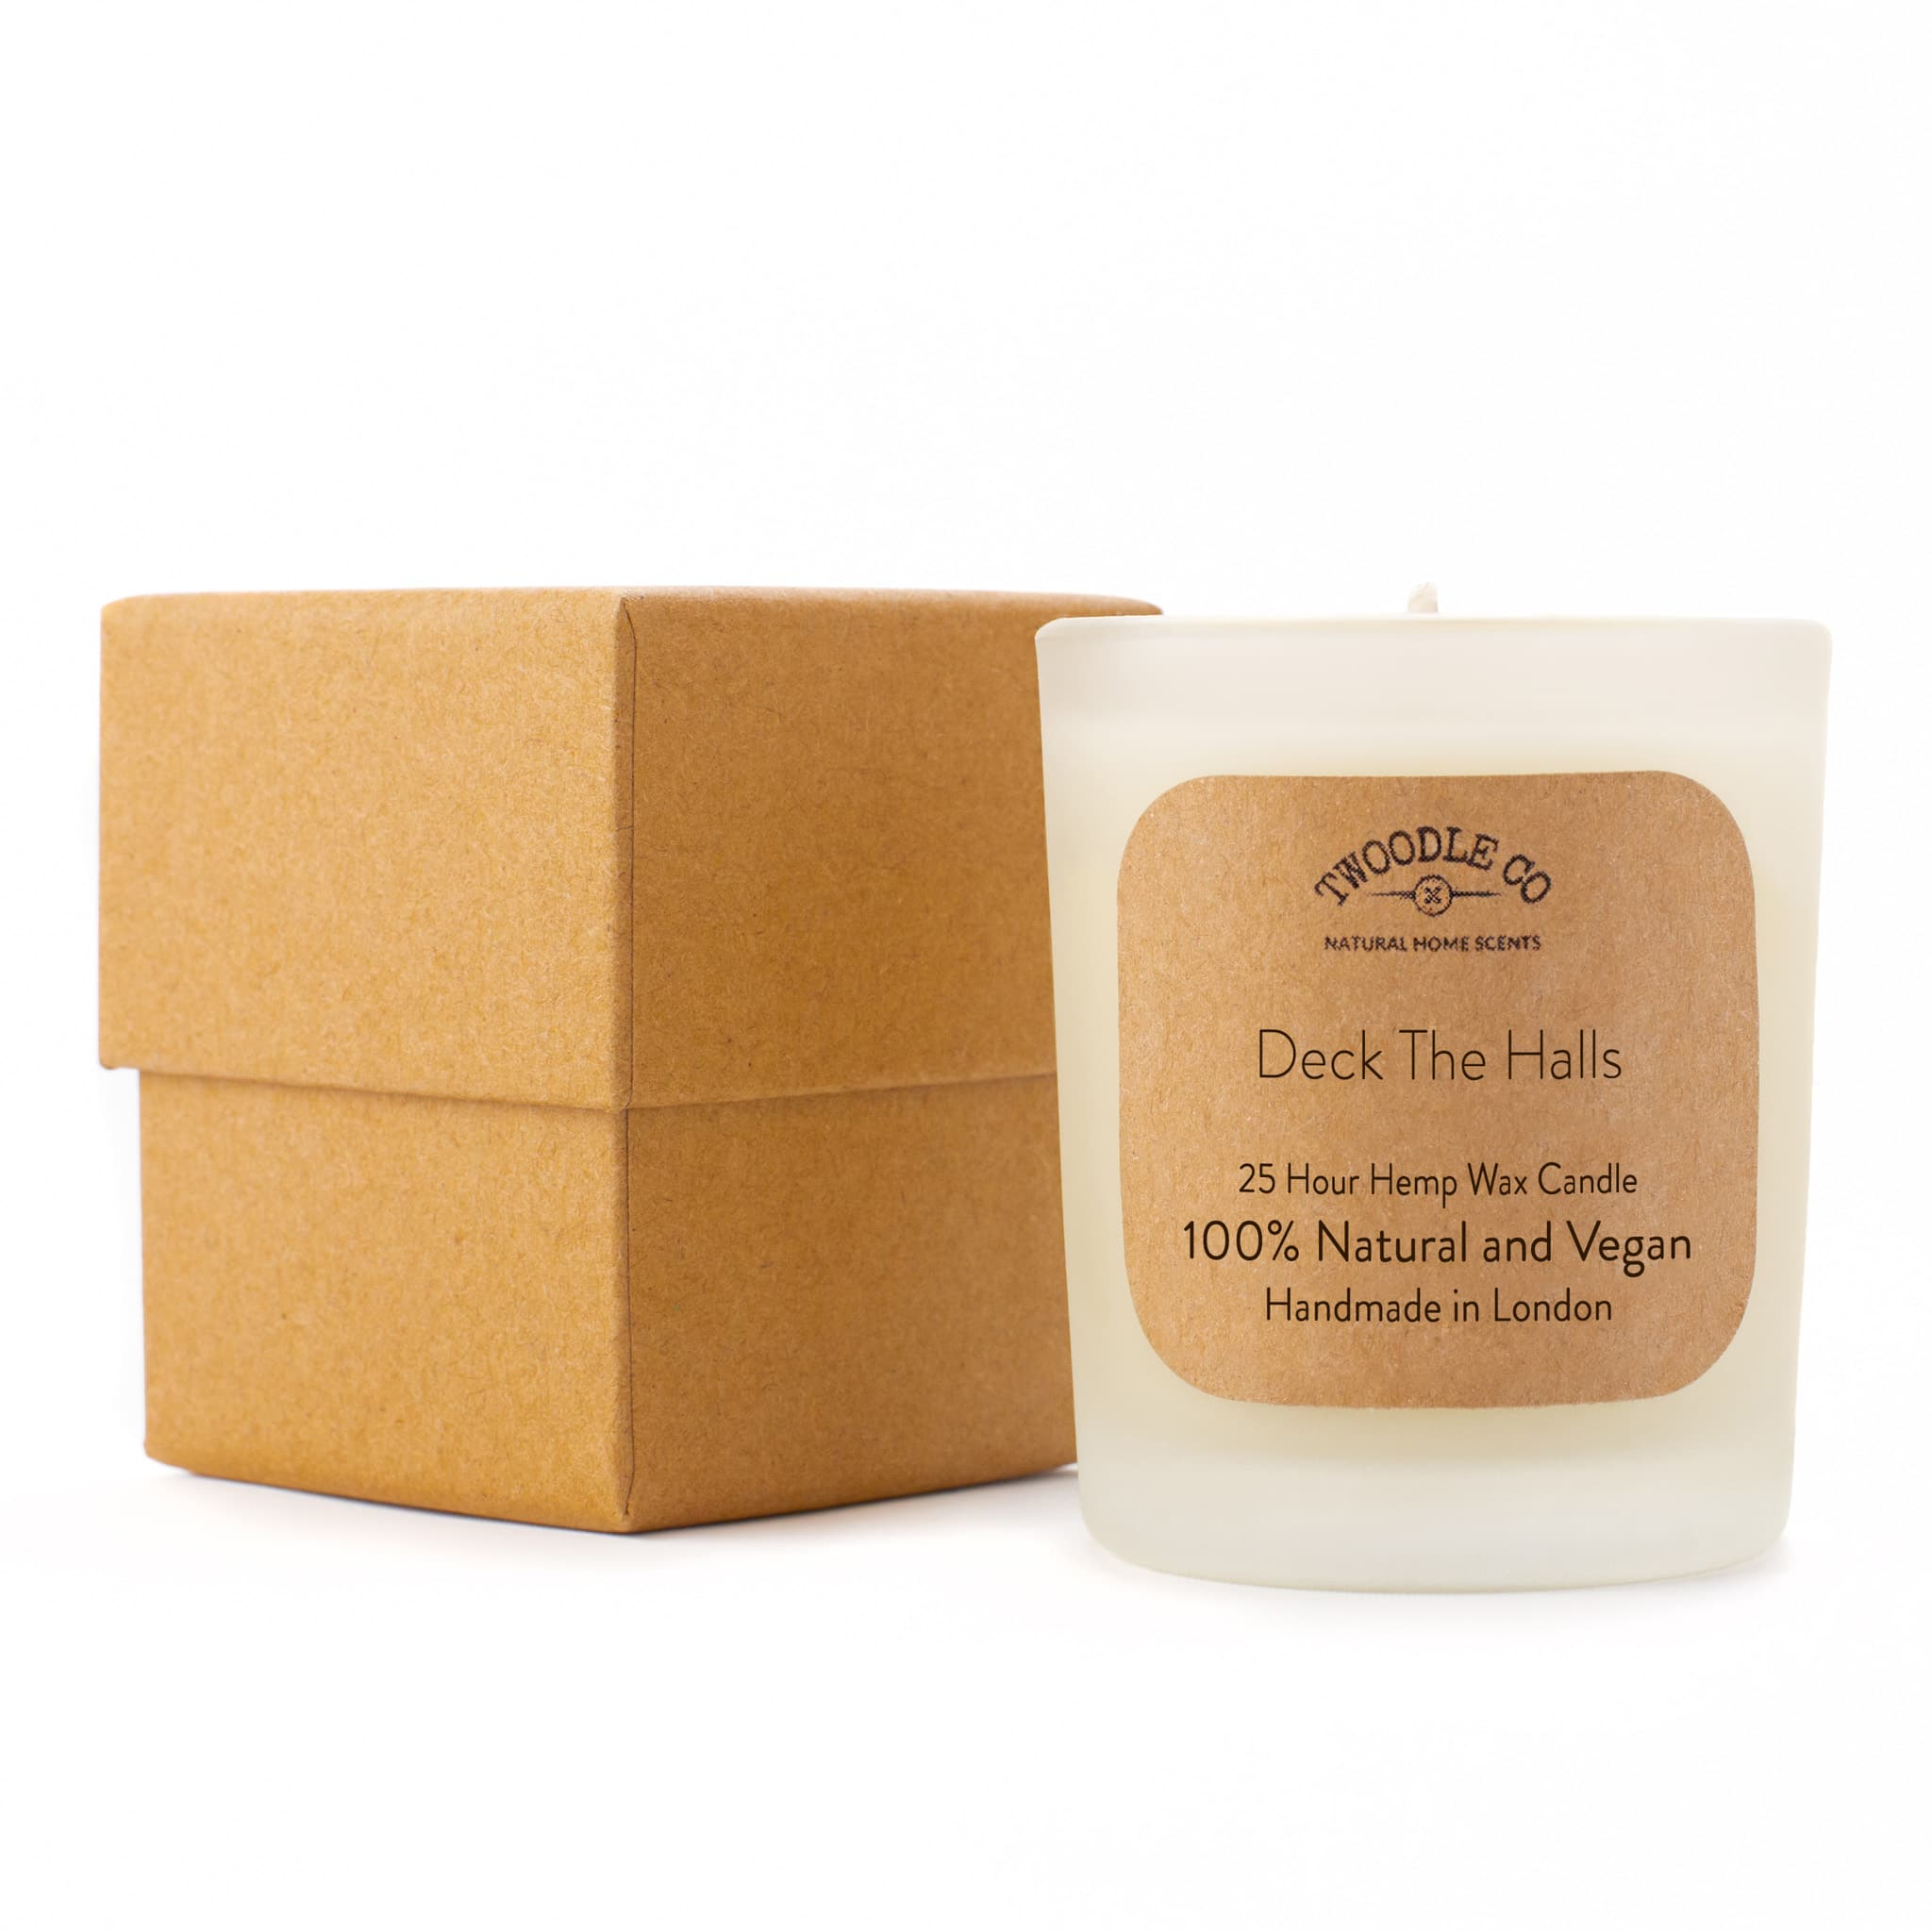 Deck The Halls Small Scented Candle 25 Hour